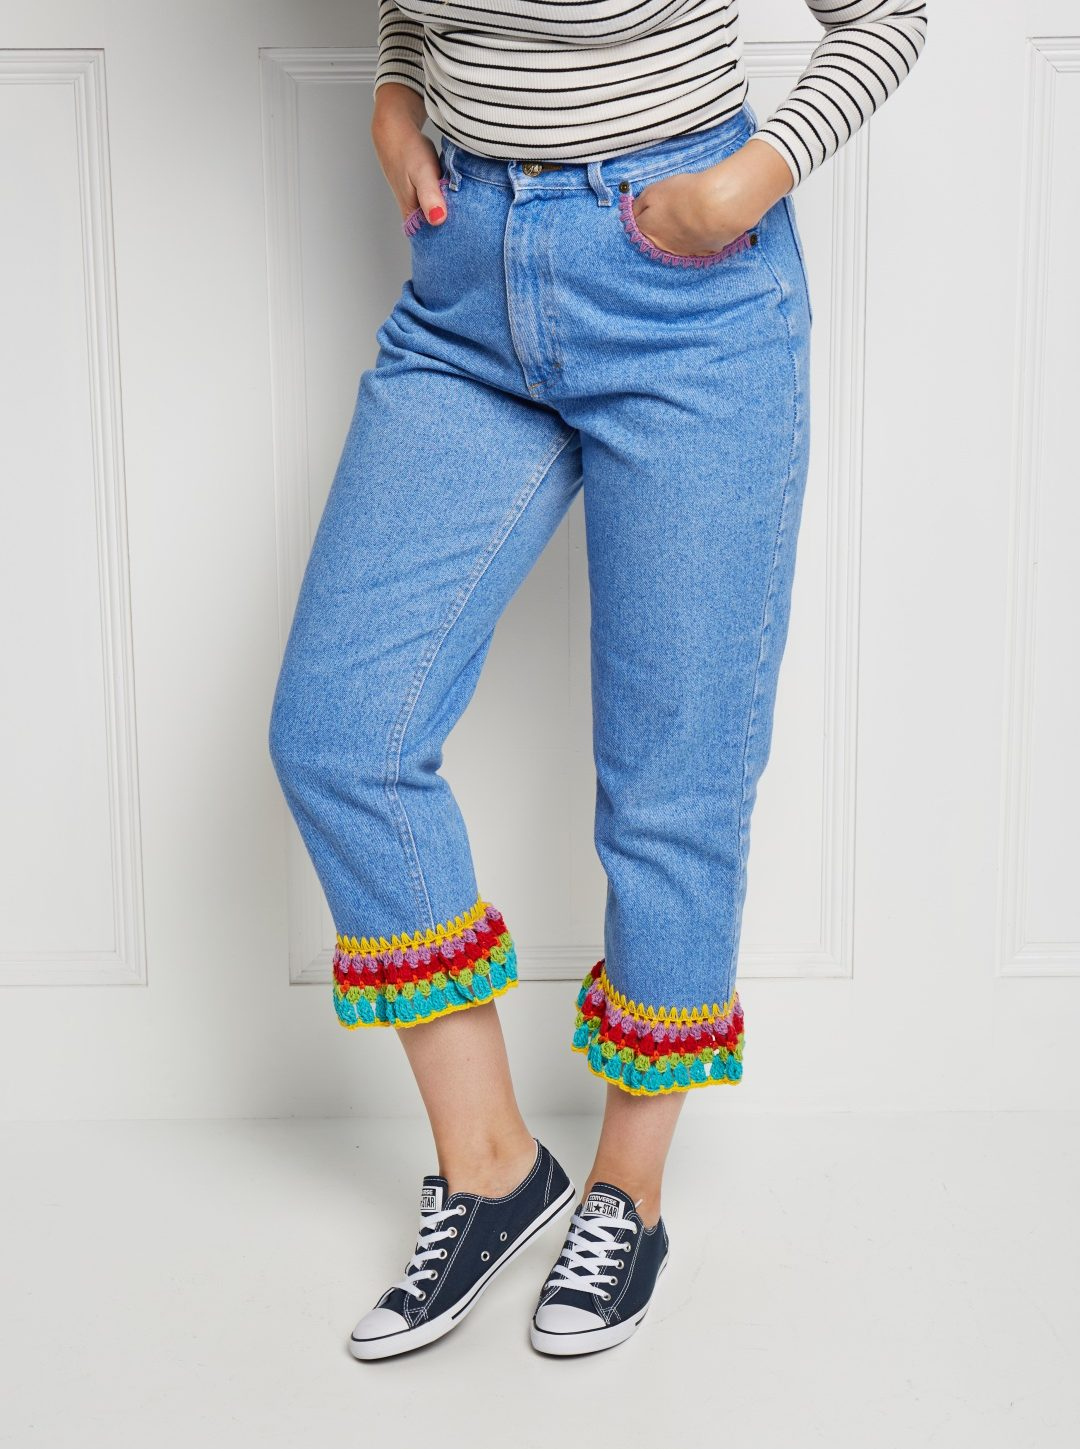 Take a look inside our new look issue! - image Katie-J-Crochet-Hack-Jeans-2-e1562319190261 on https://knitting-crocheting-yarn.com